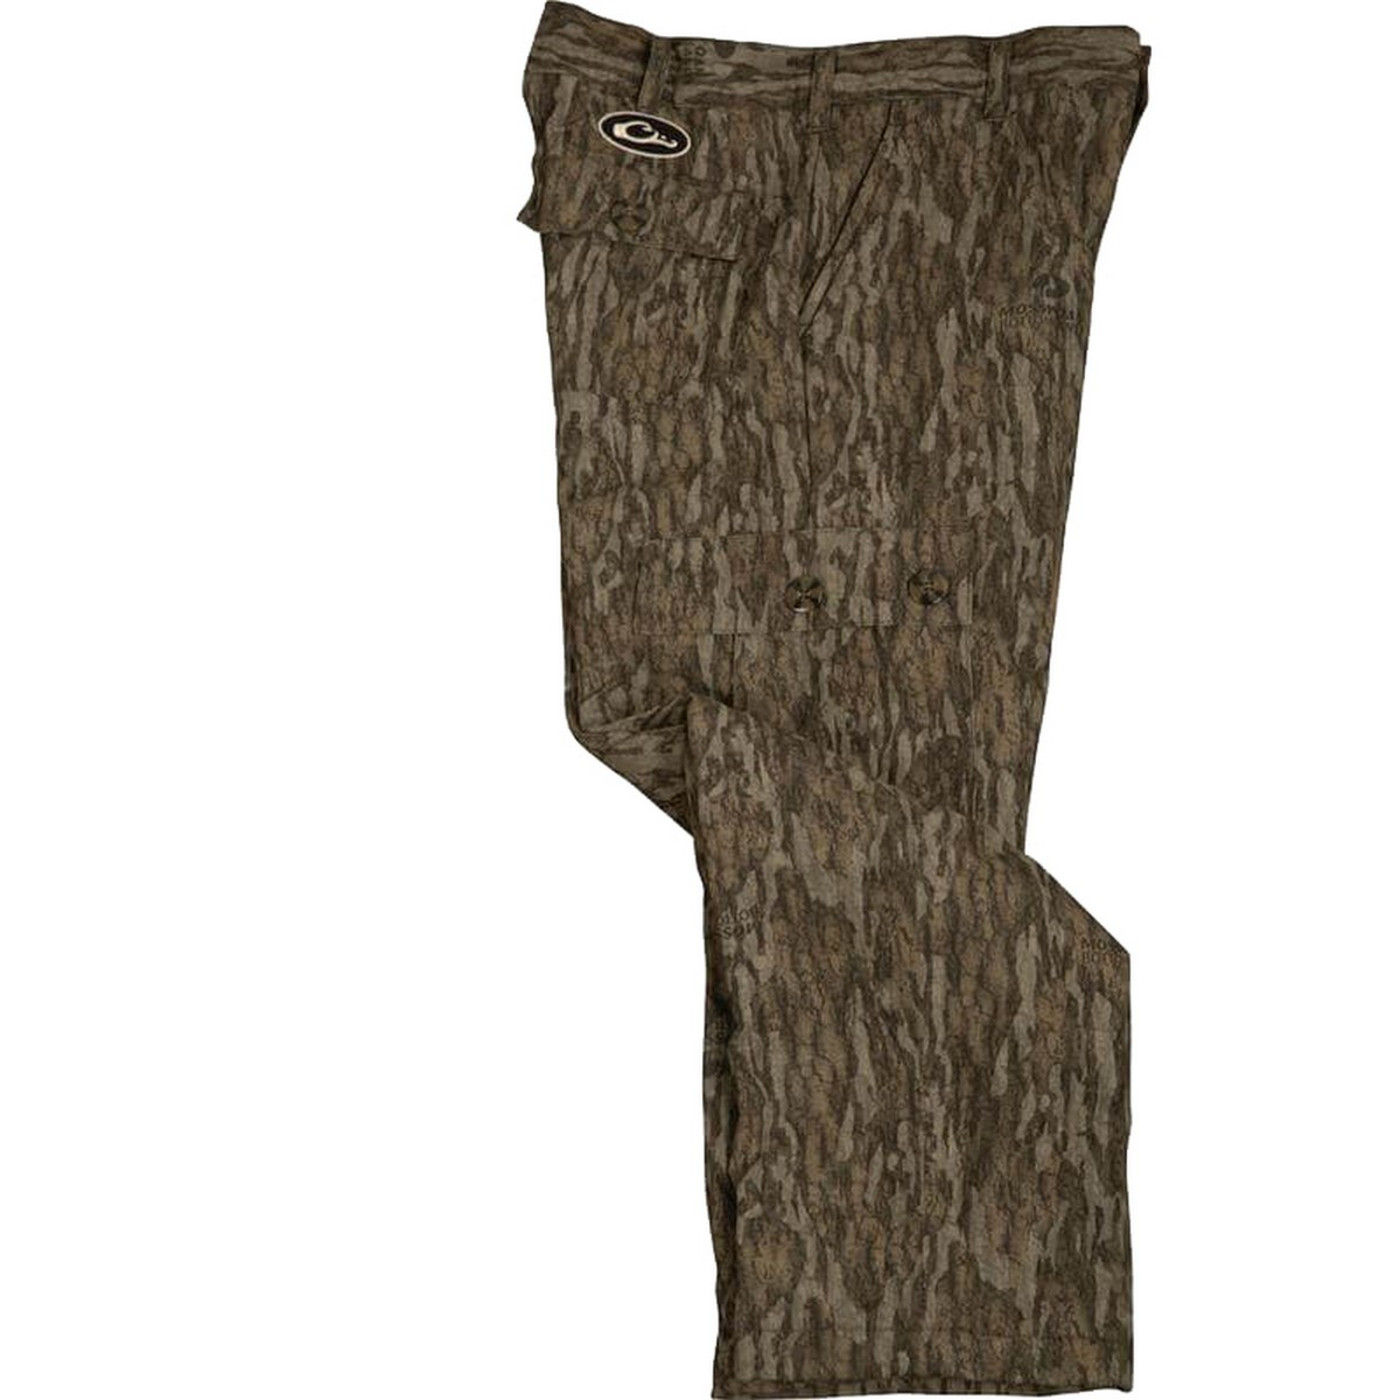 Drake Youth MST Fleece Hunting Pant in Mossy Oak Bottomland Color